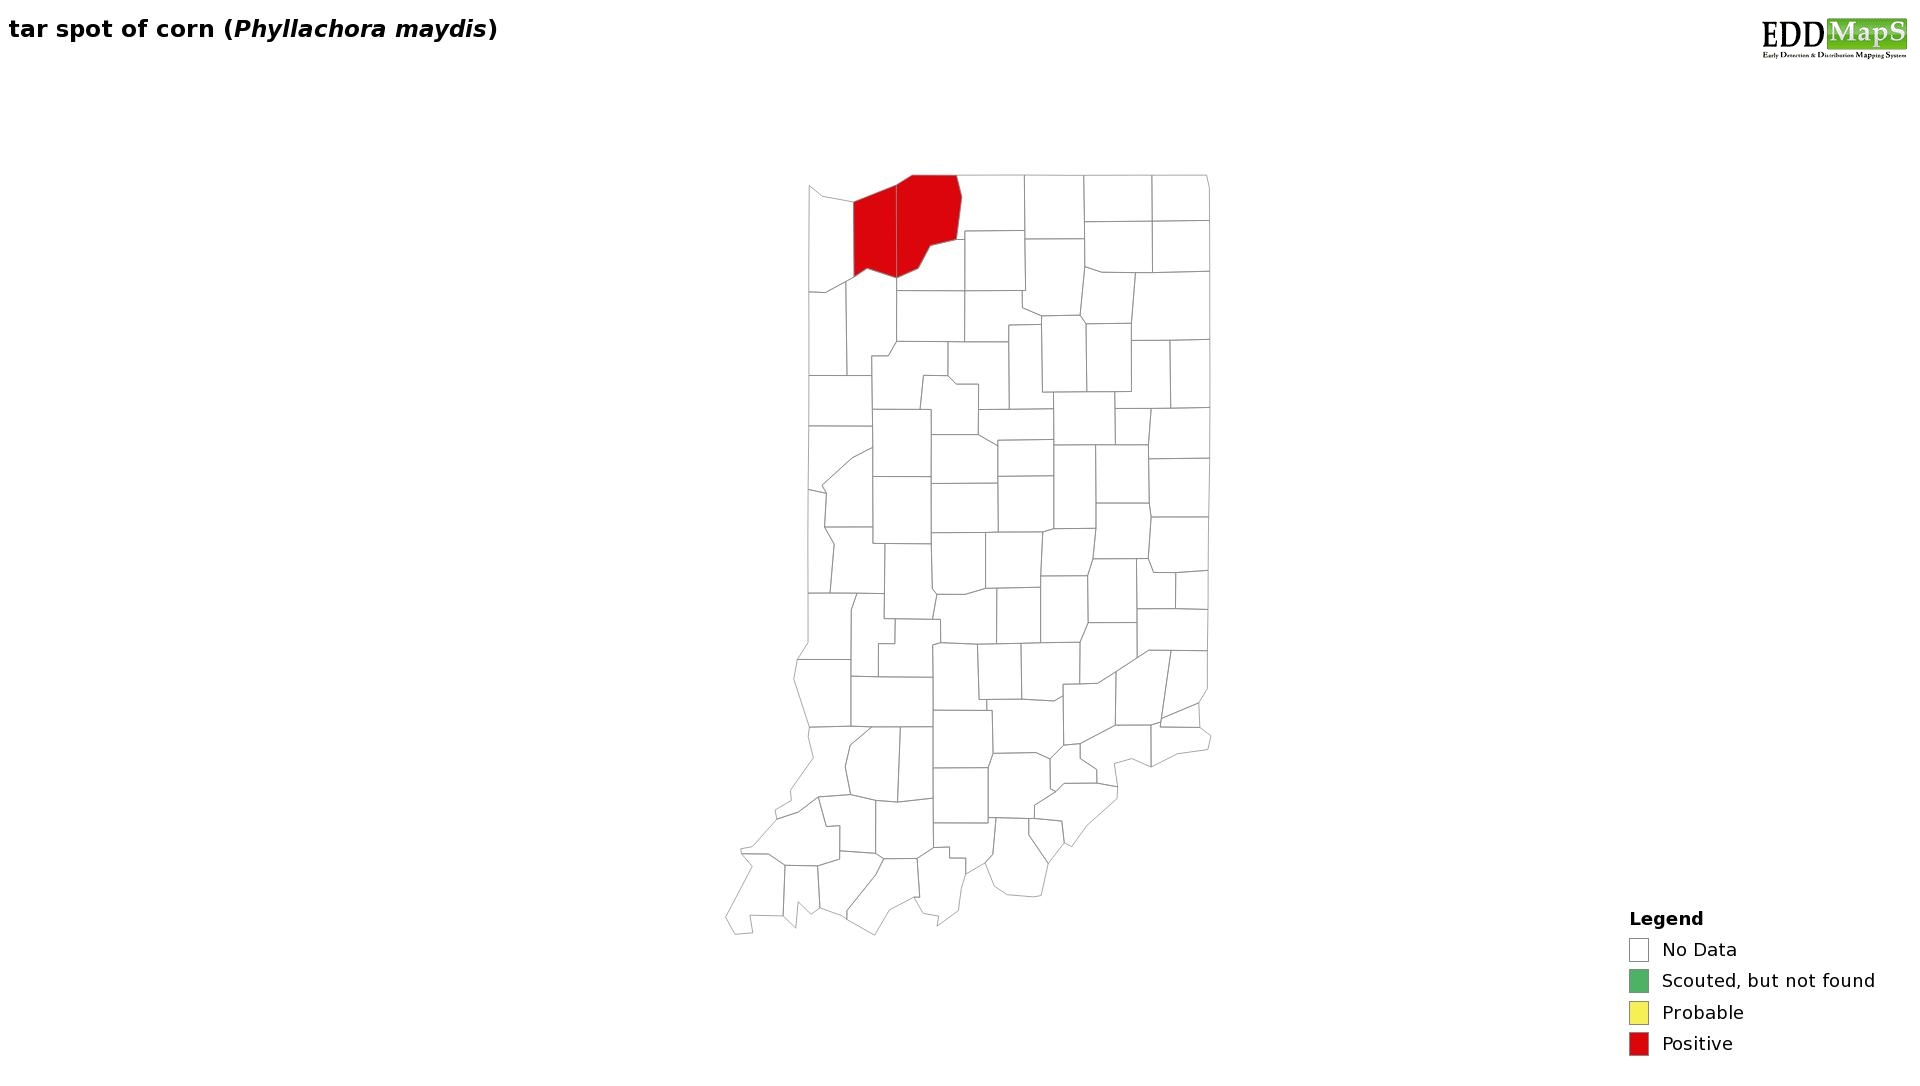 Figure 1. 2019 Distribution map of counties confirmed for tar spot of corn in Indiana. Website: https://corn.ipmpipe.org